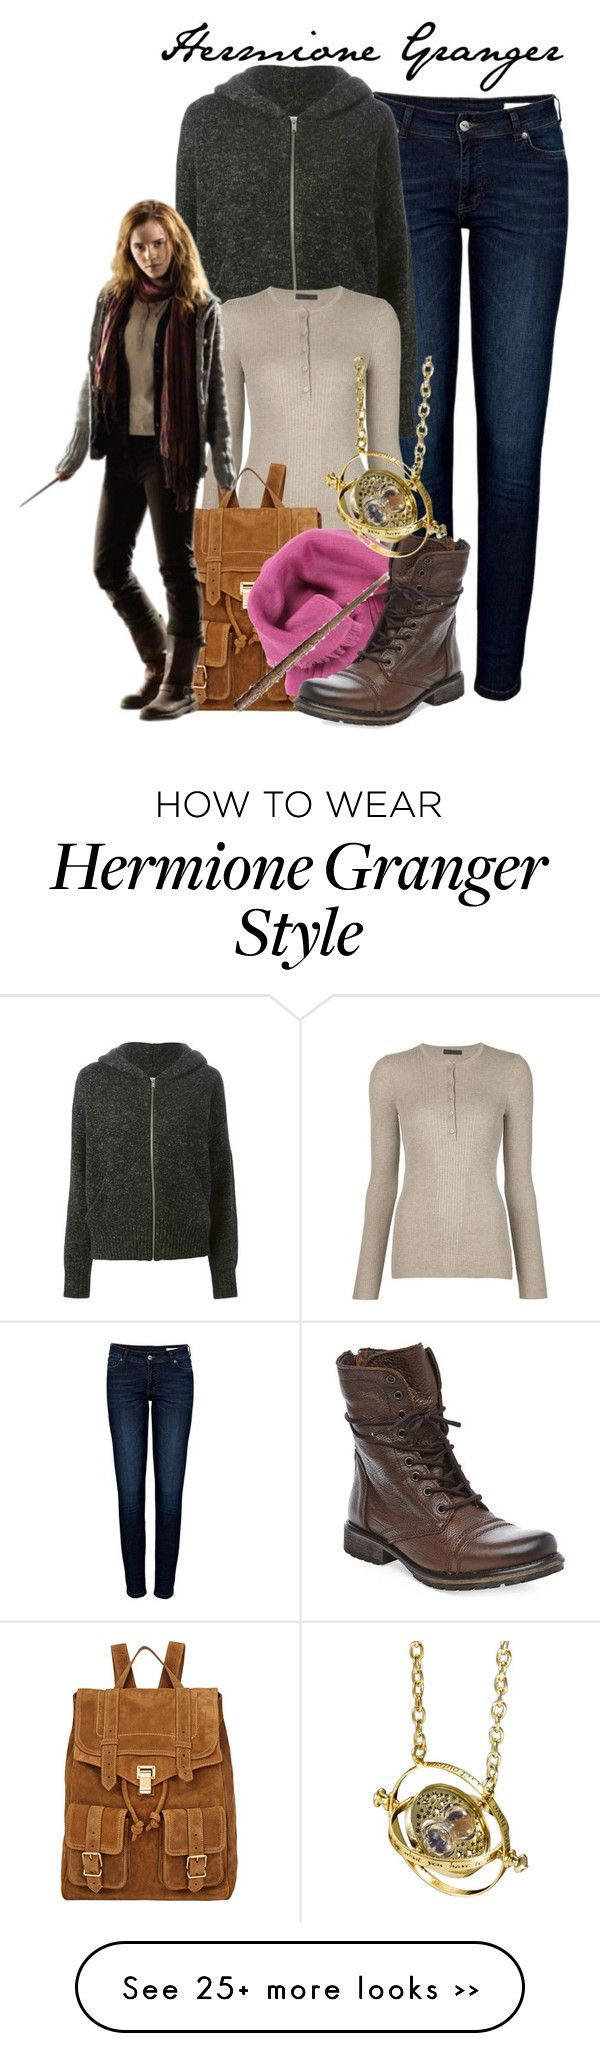 """""""Hermione Granger - Arwen"""" by the-fandom-gals on Polyvore featuring Anine Bing, Étoile Isabel Marant, ATM by Anthony Thomas Melillo, Proenza Schouler, Bajra, Steve Madden and QueenofGondor"""